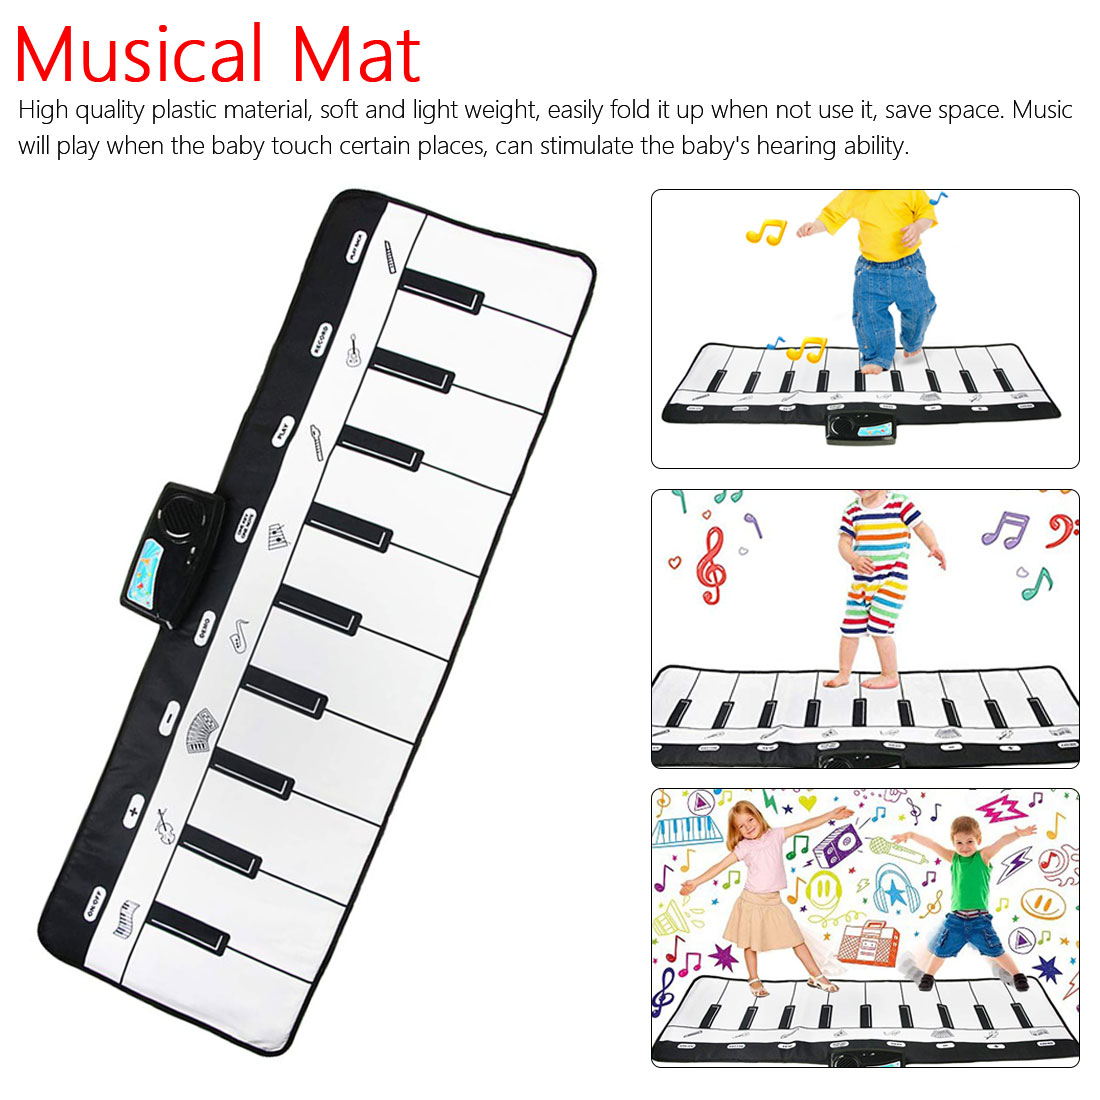 Baby Music Carpet Baby Musical Mat Children Educational Carpets Babe Infant Piano Music Play Mats Games Play Mat For Kids